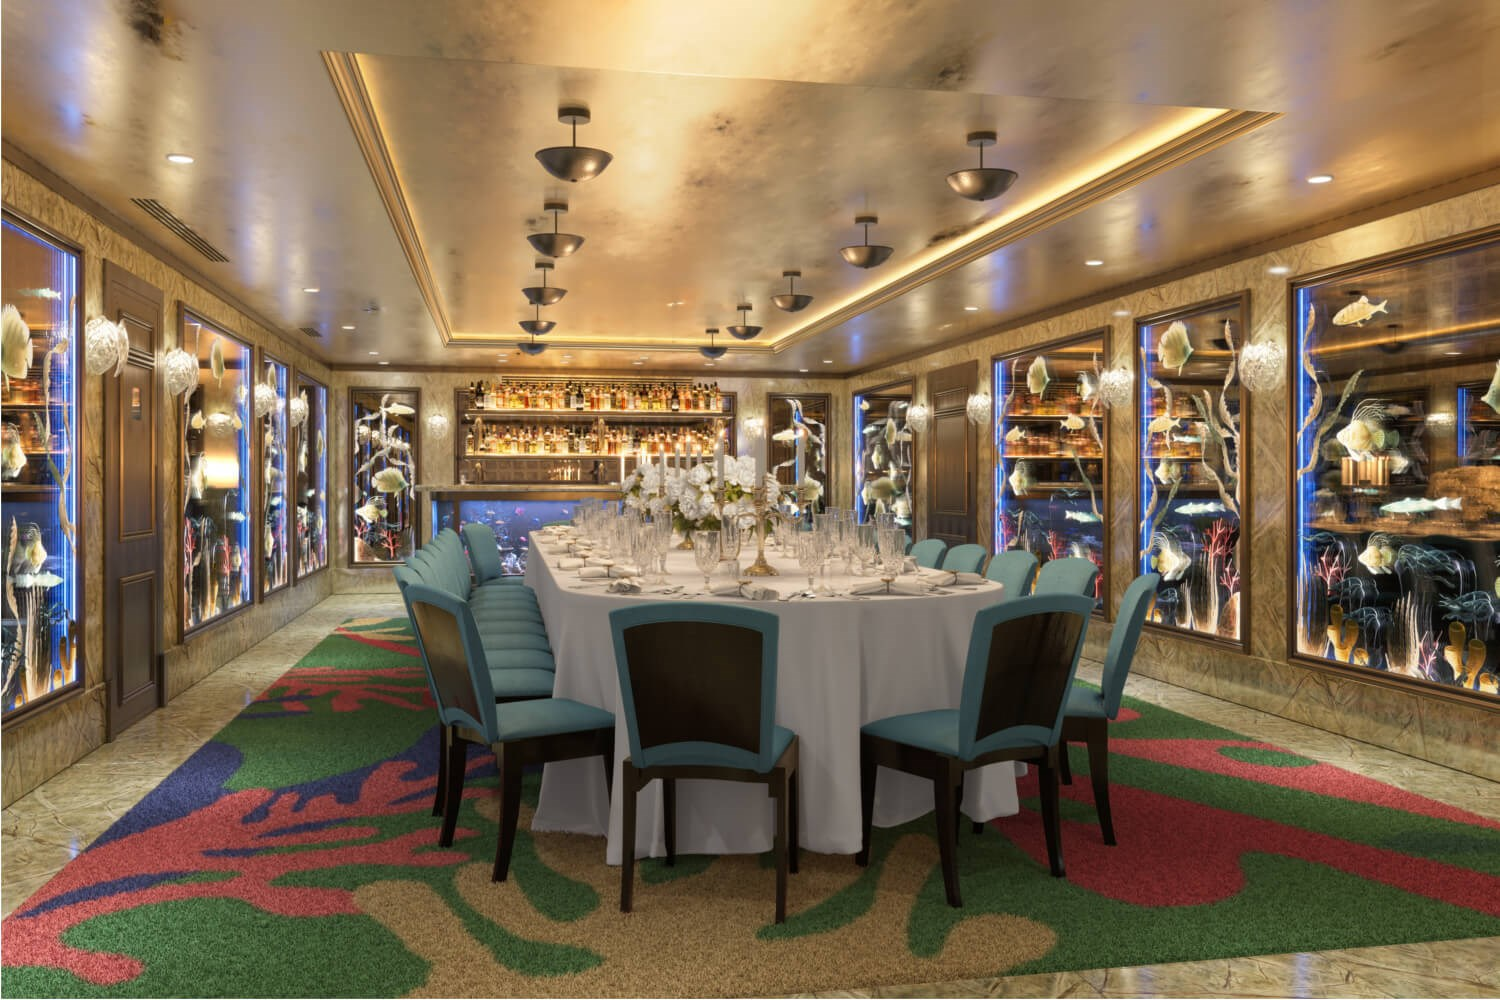 The New Private Dining Room at Scott's in Mayfair